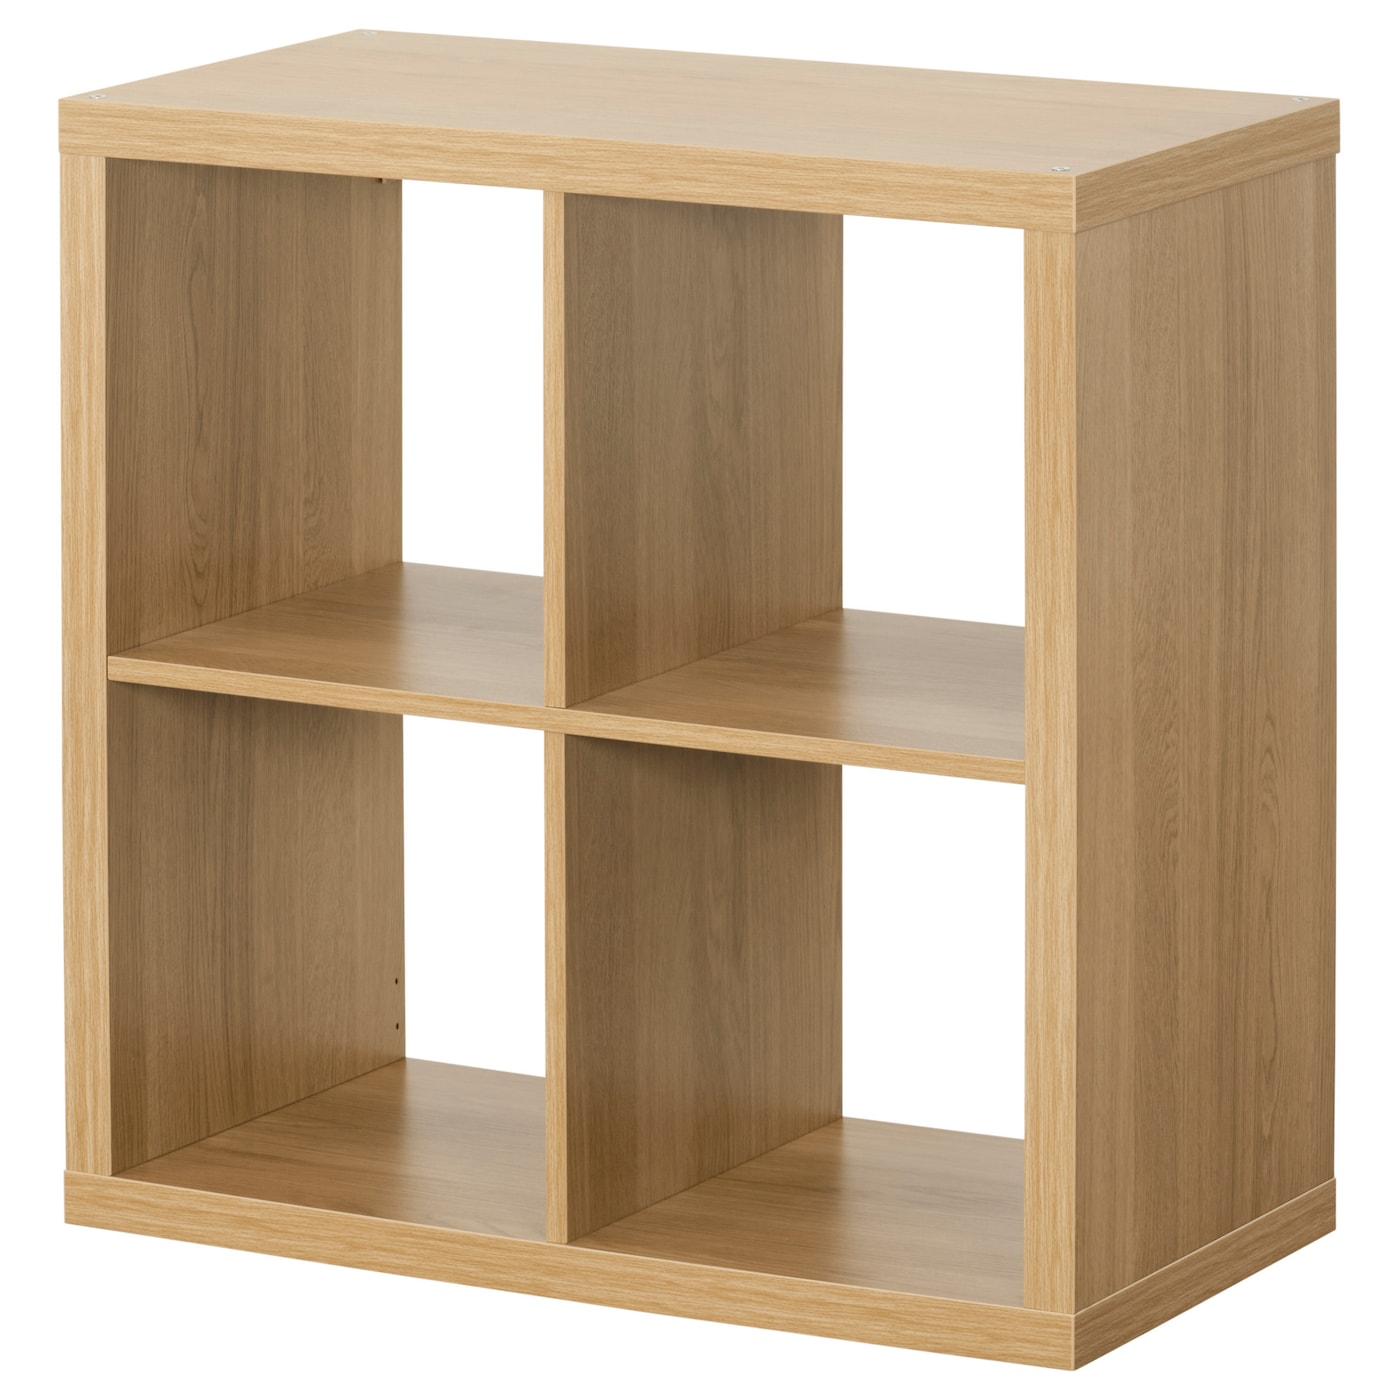 kallax shelving unit oak effect 77x77 cm ikea. Black Bedroom Furniture Sets. Home Design Ideas